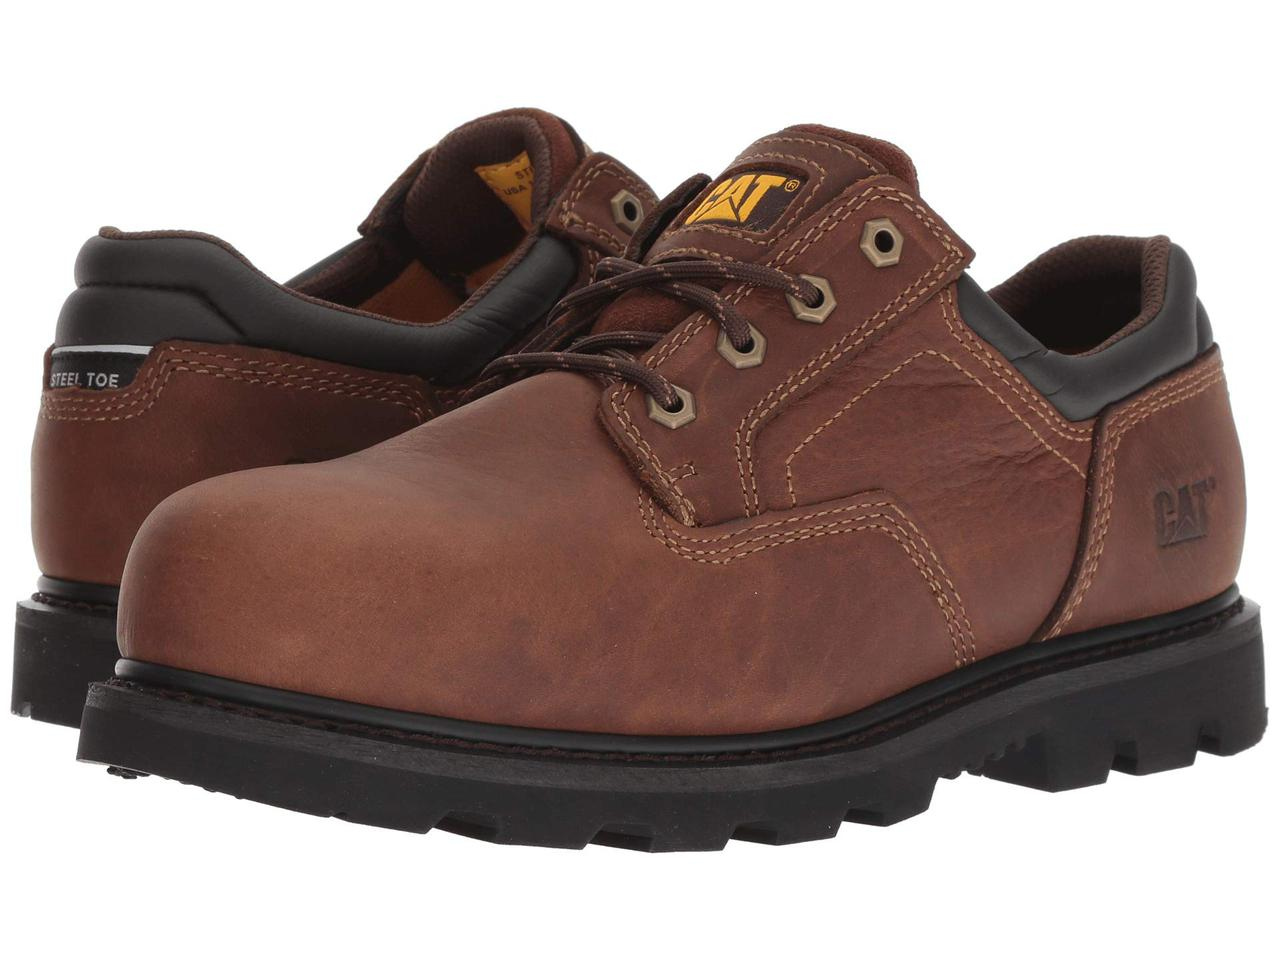 f6fa8d563 Туфли (Оригинал) Caterpillar Ridgemont 2.0 Steel Toe Oak - TopUSA